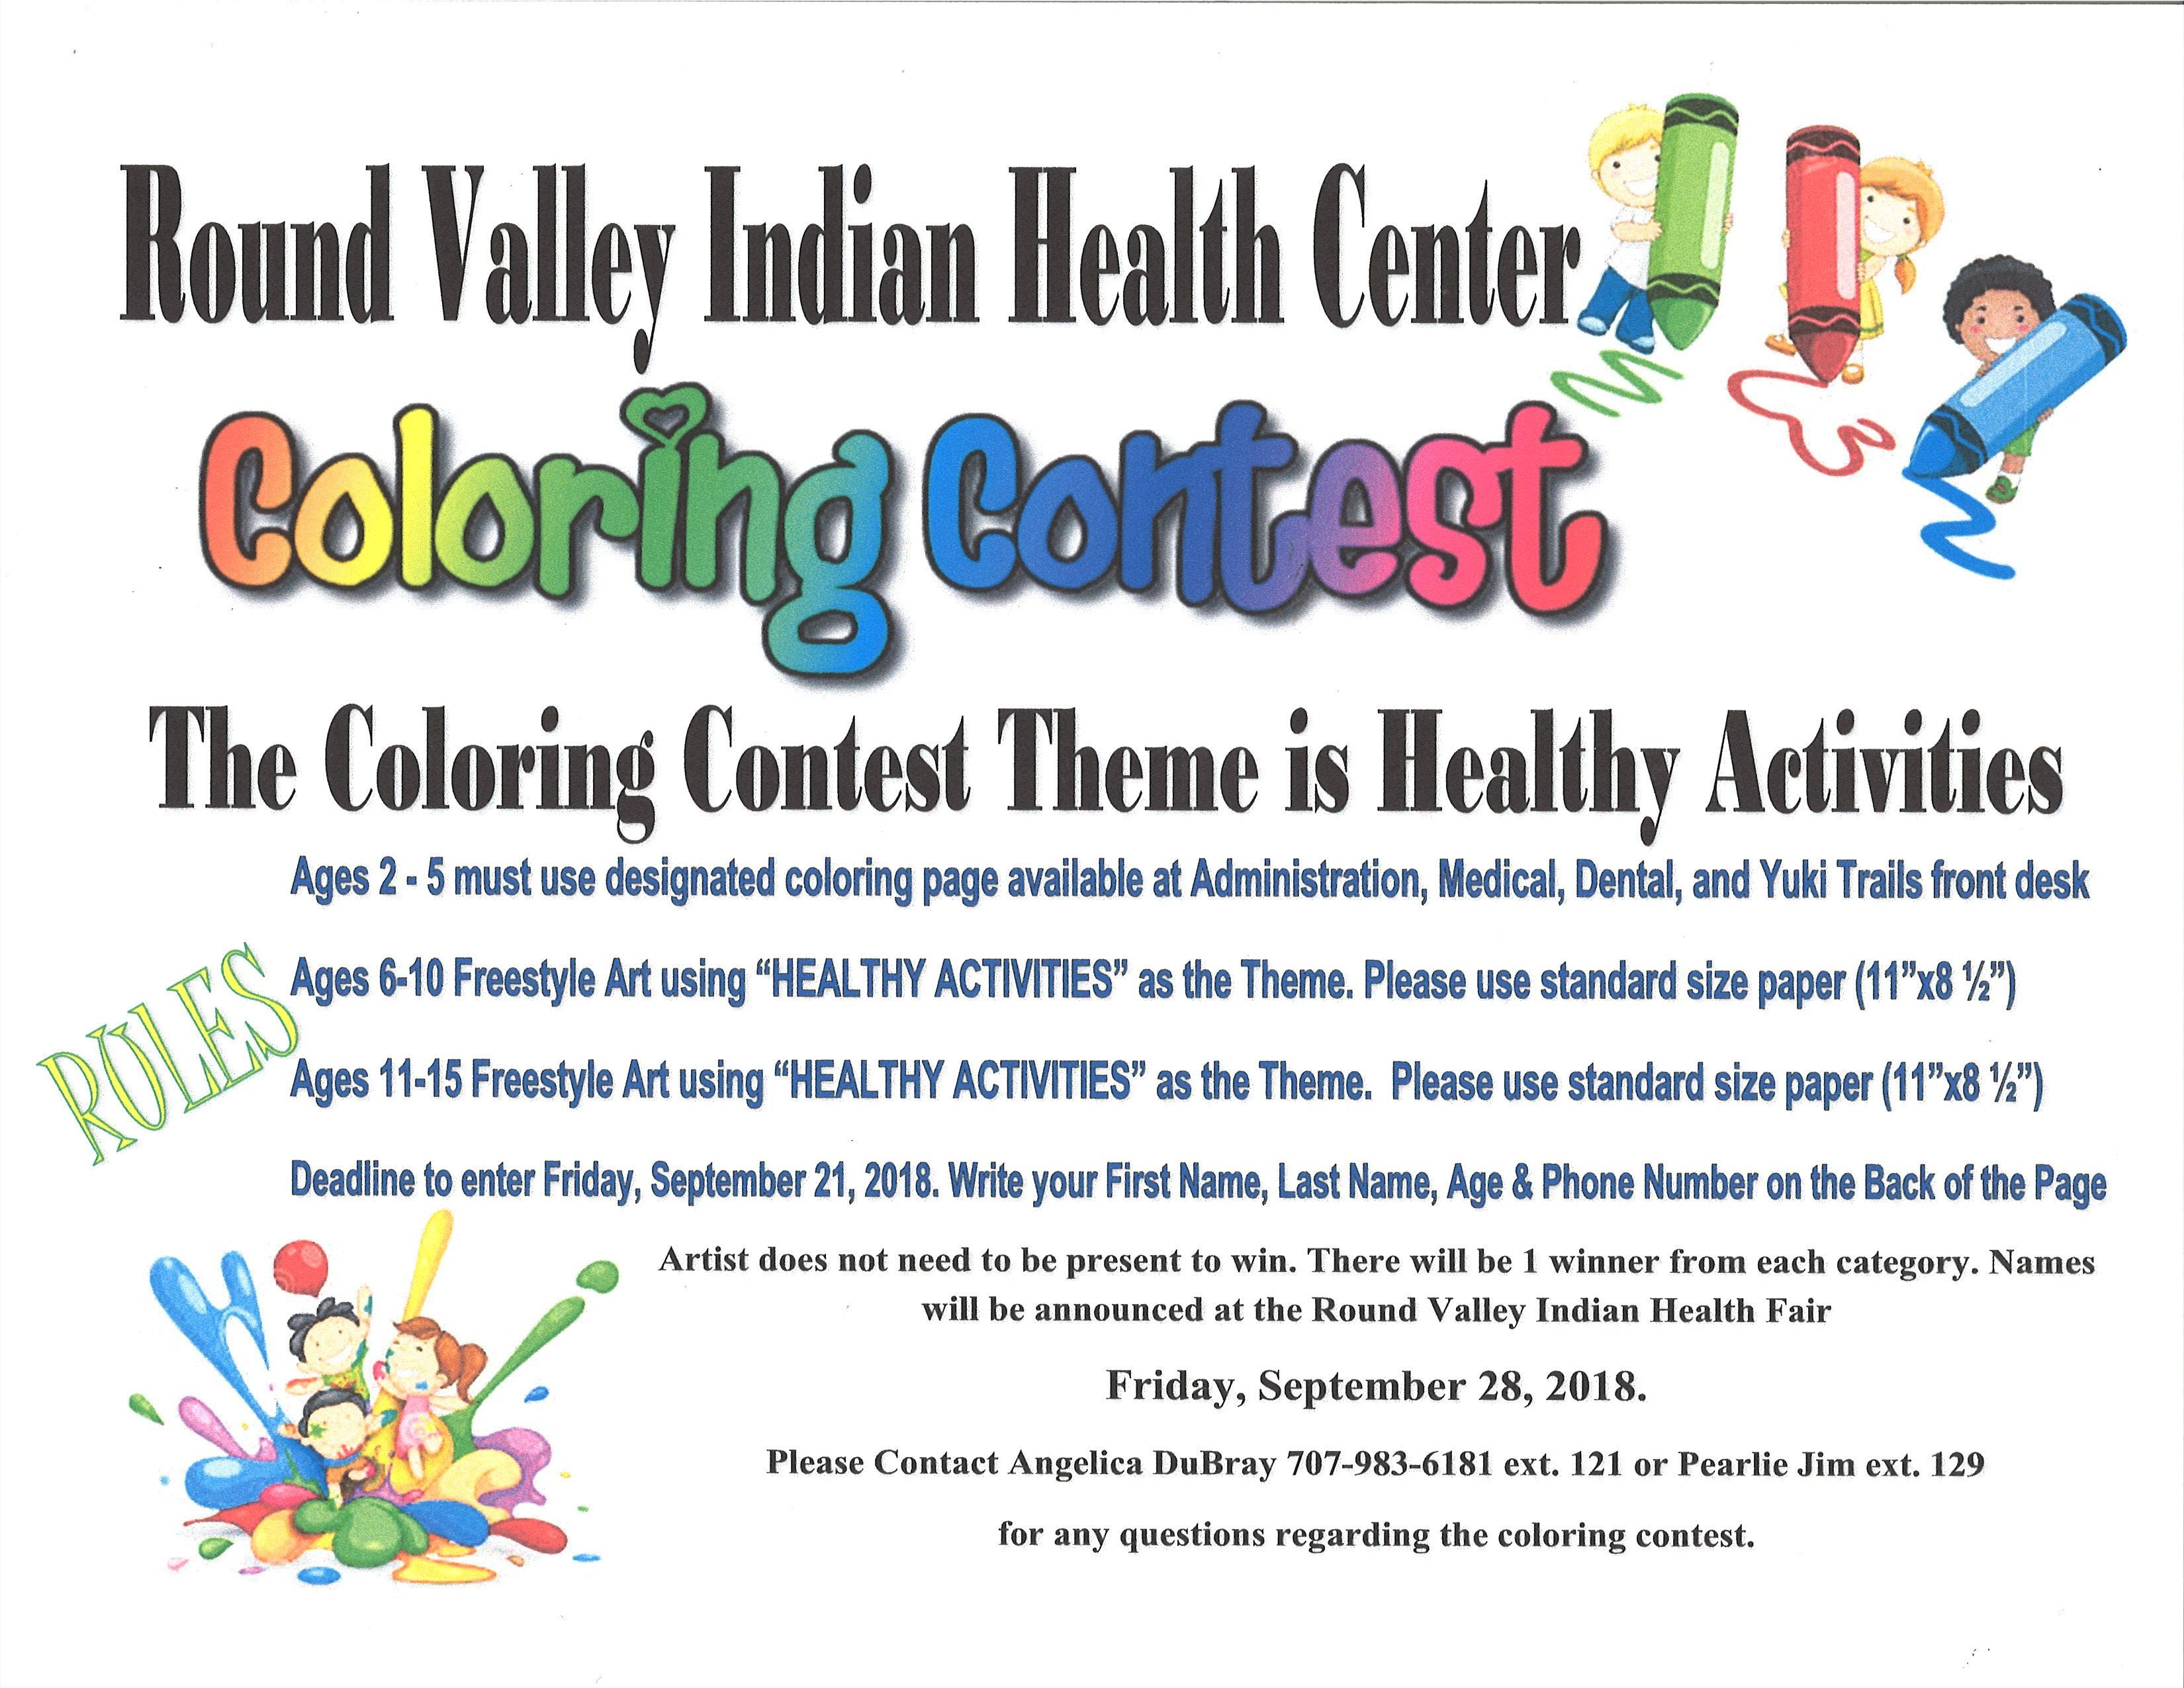 Current Events - Round Valley Indian Health Center